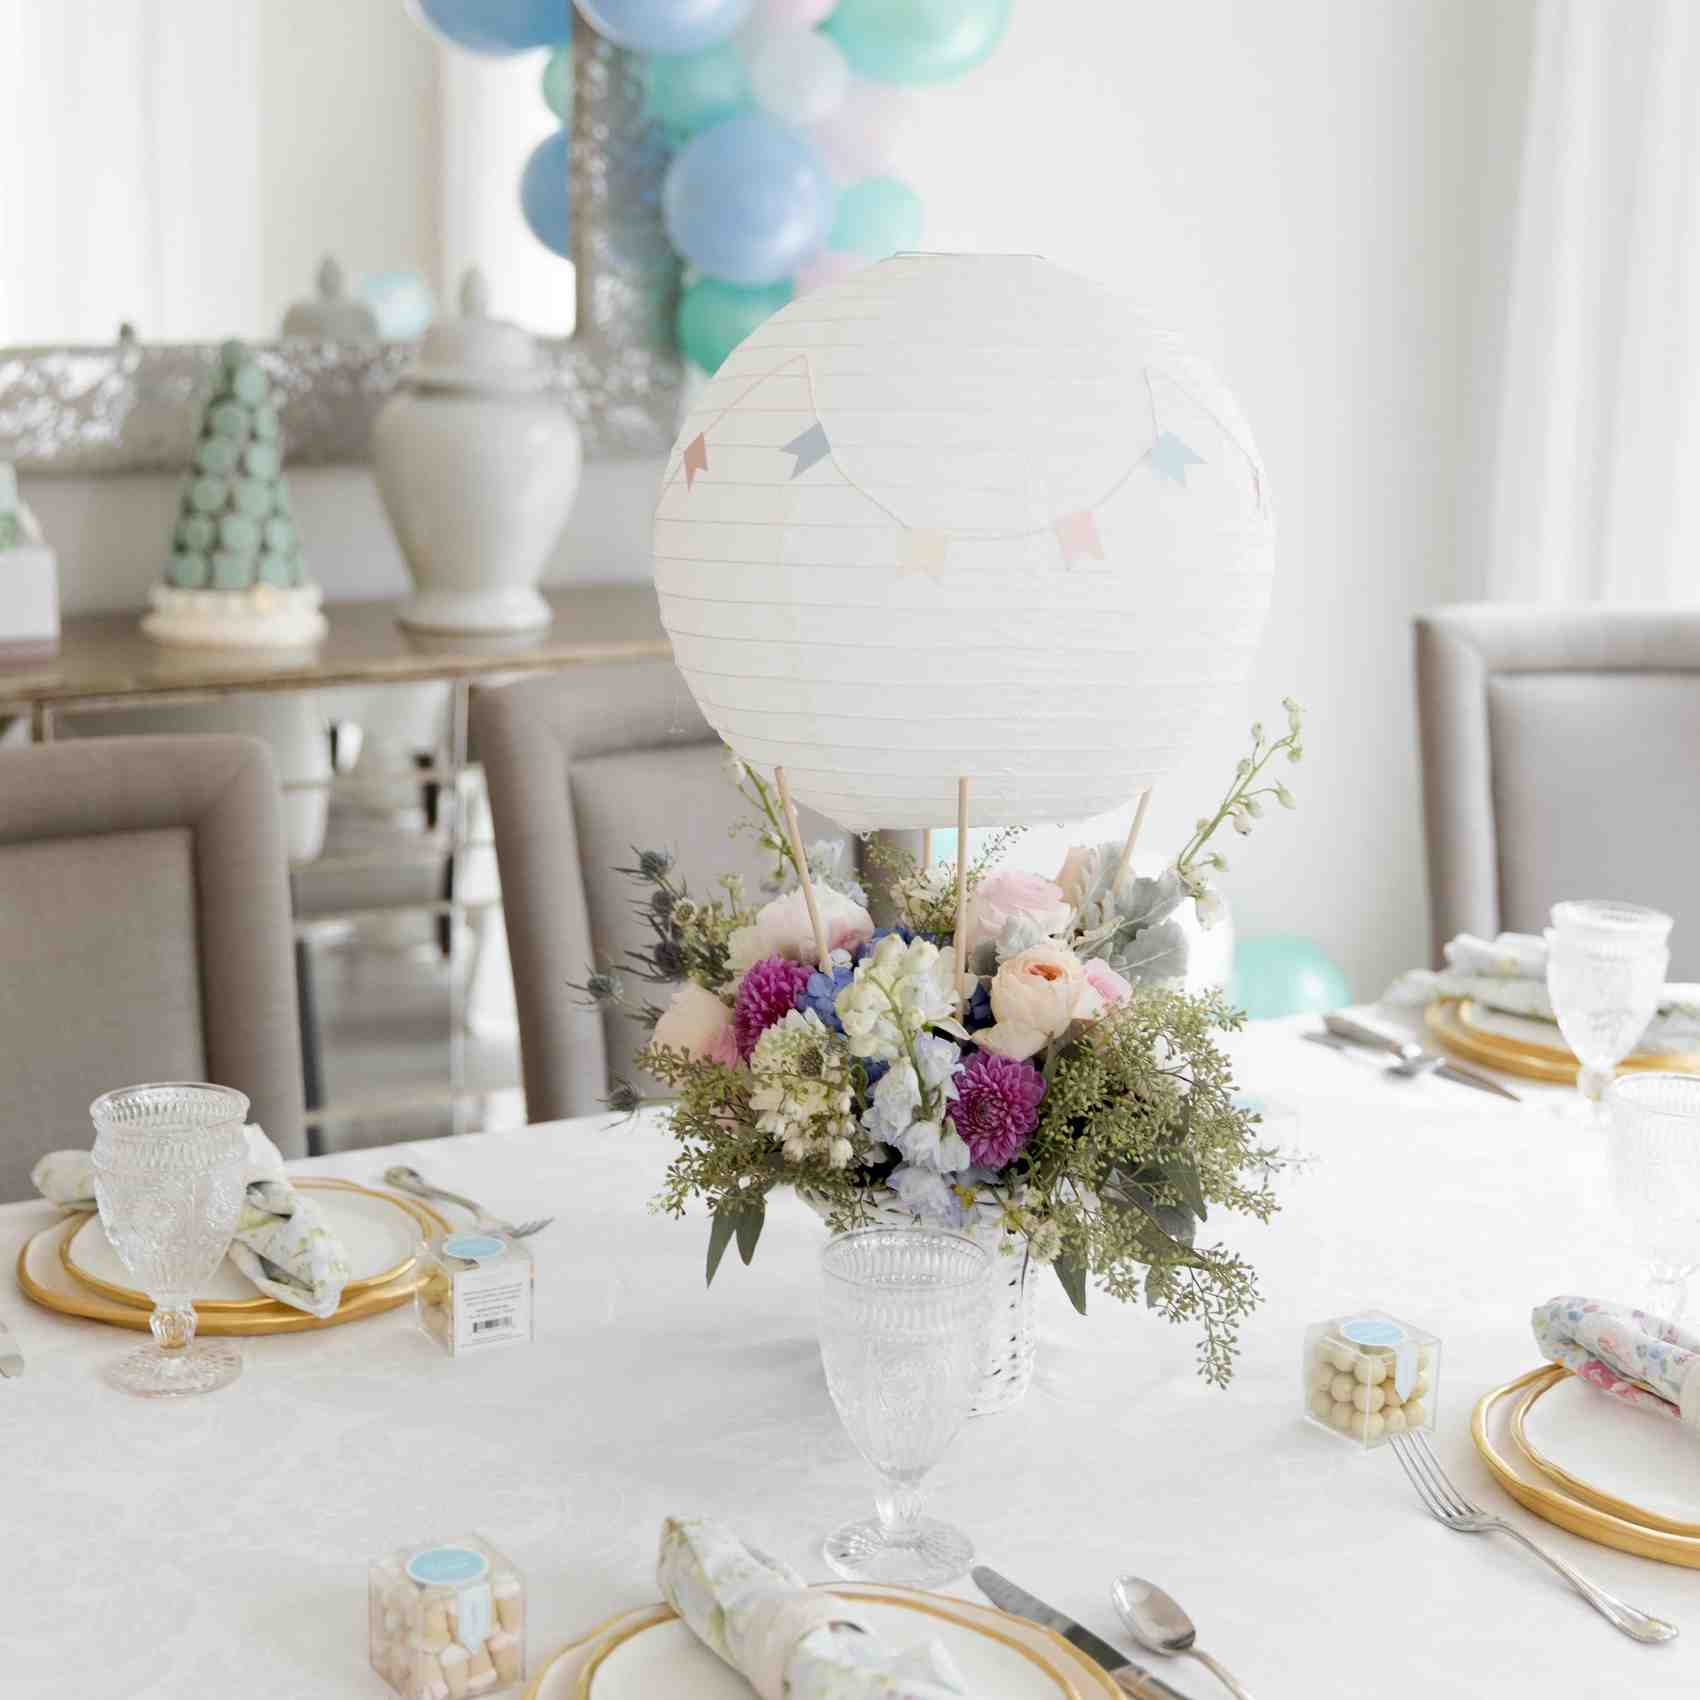 Table decorations for baby shower by martha stewart home for Baby shower decoration ideas martha stewart